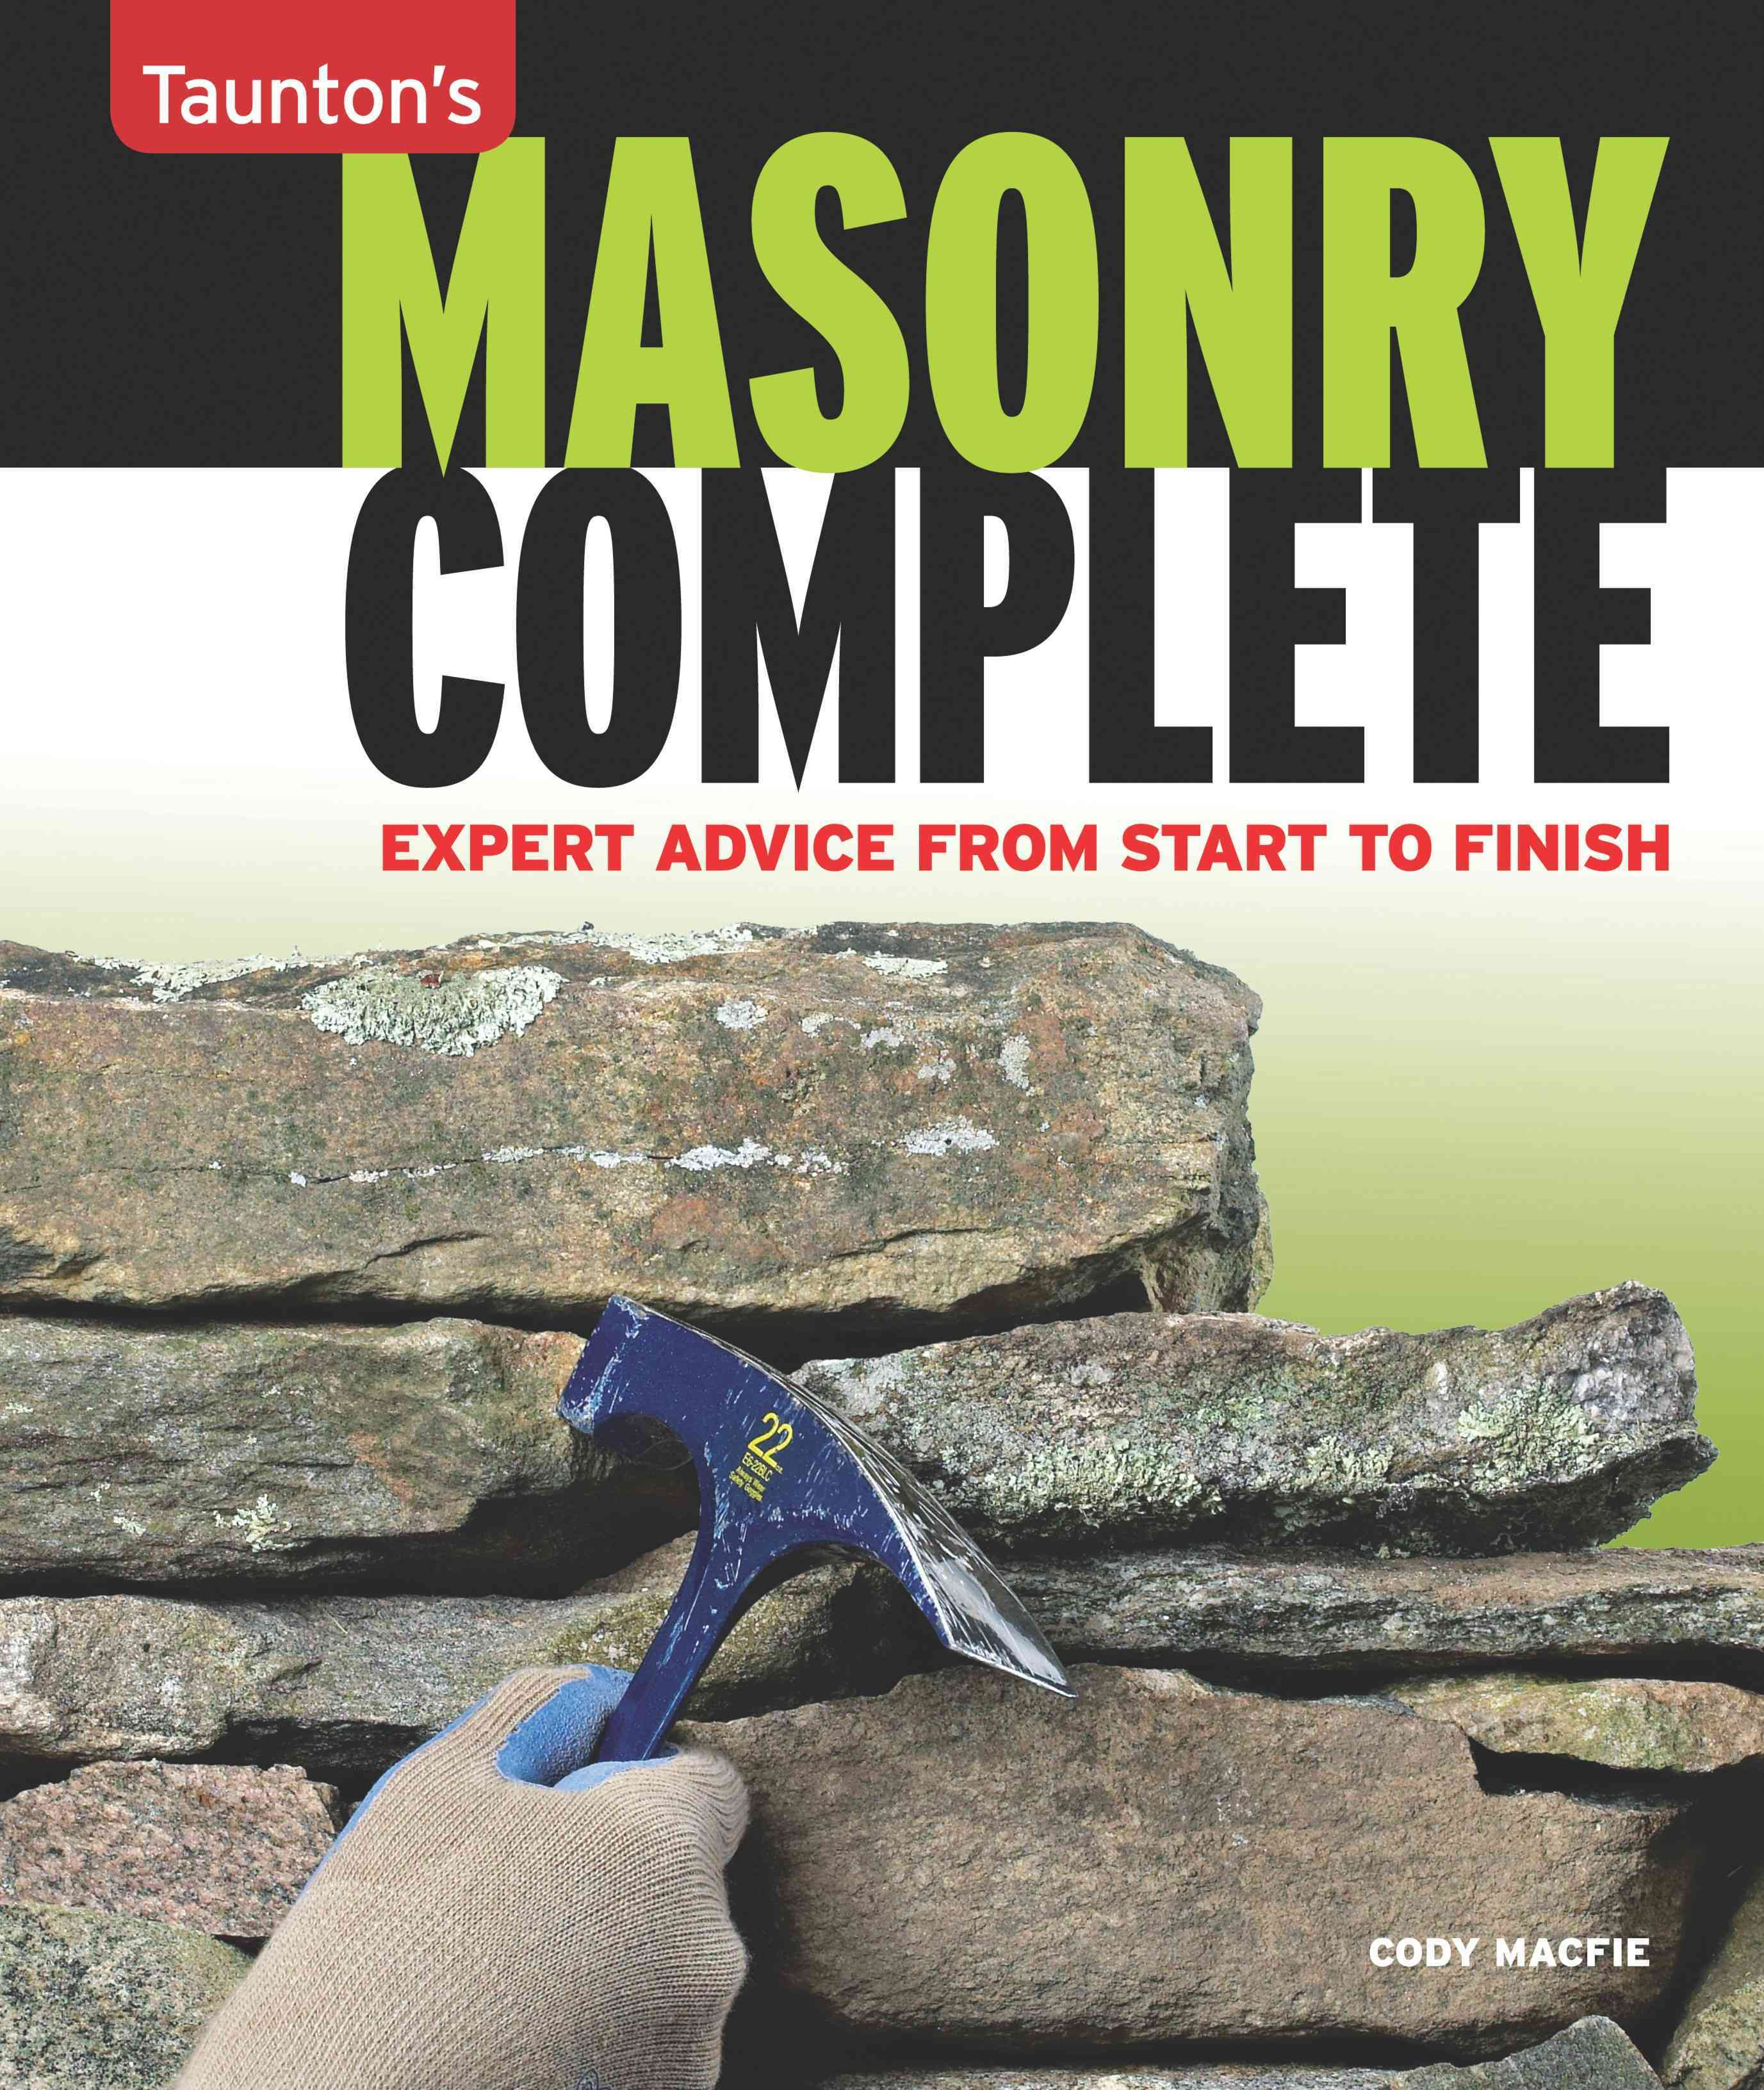 Taunton's Masonry Complete: Expert Advice from Start to Finish (Paperback)